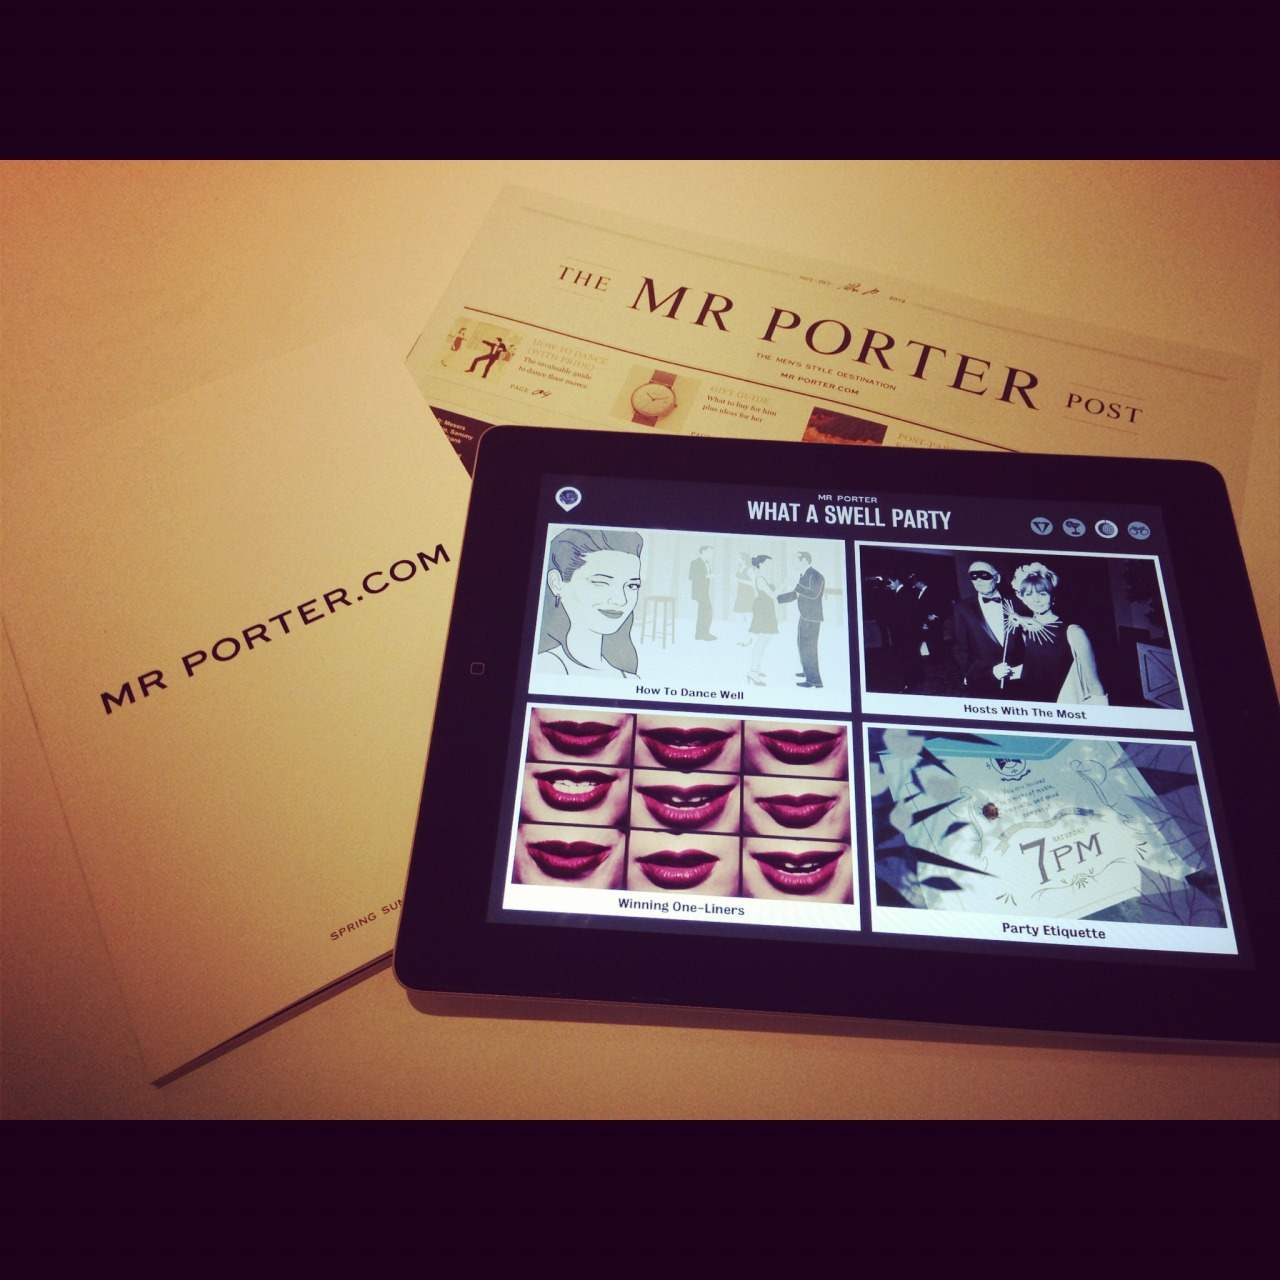 Have you had an opportunity to experience the Mr Porter iPad Magazine? Issue One – The Tux is available now, and is your perfect guide to the holiday season. Download our free app now for exclusive videos, interviews, and interactive features: http://bit.ly/Wiku7U